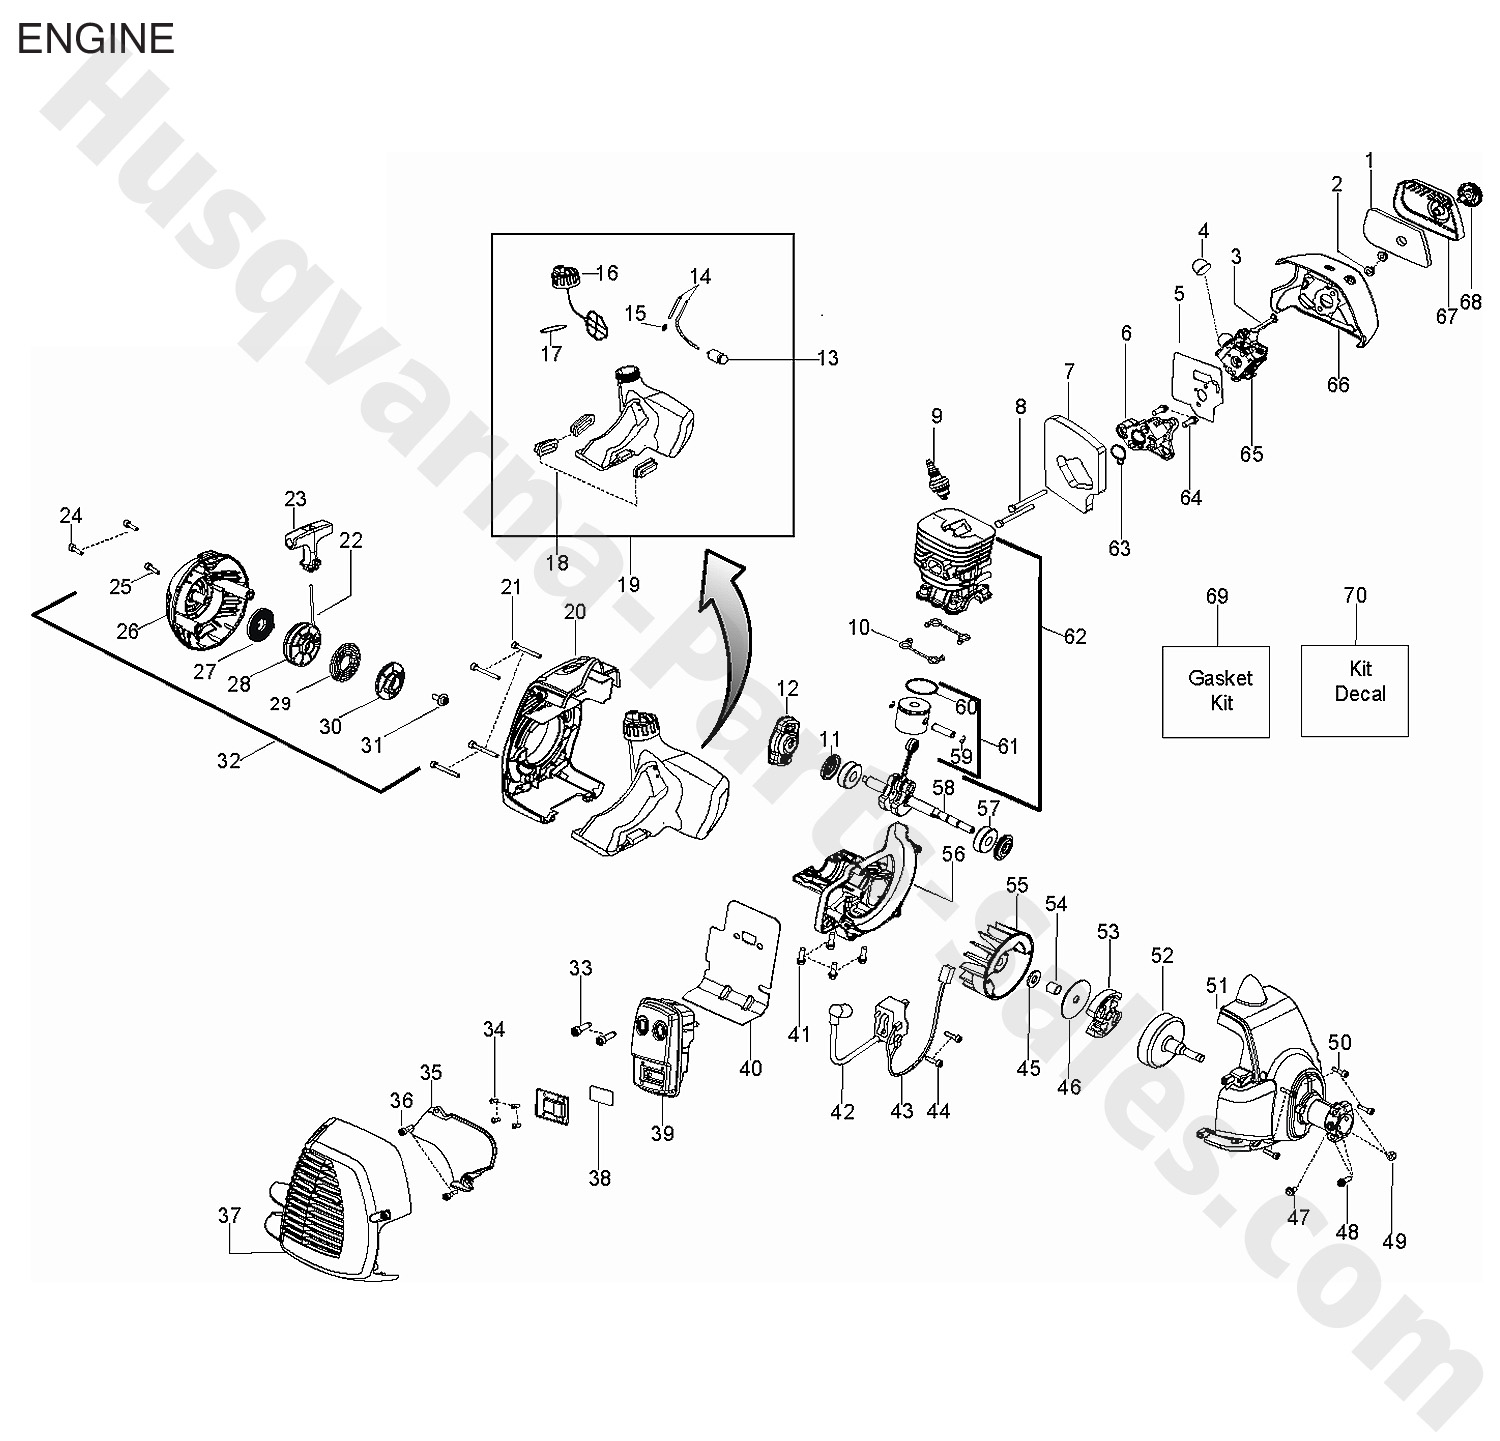 2001 mitsubishi diamante vacuum diagram